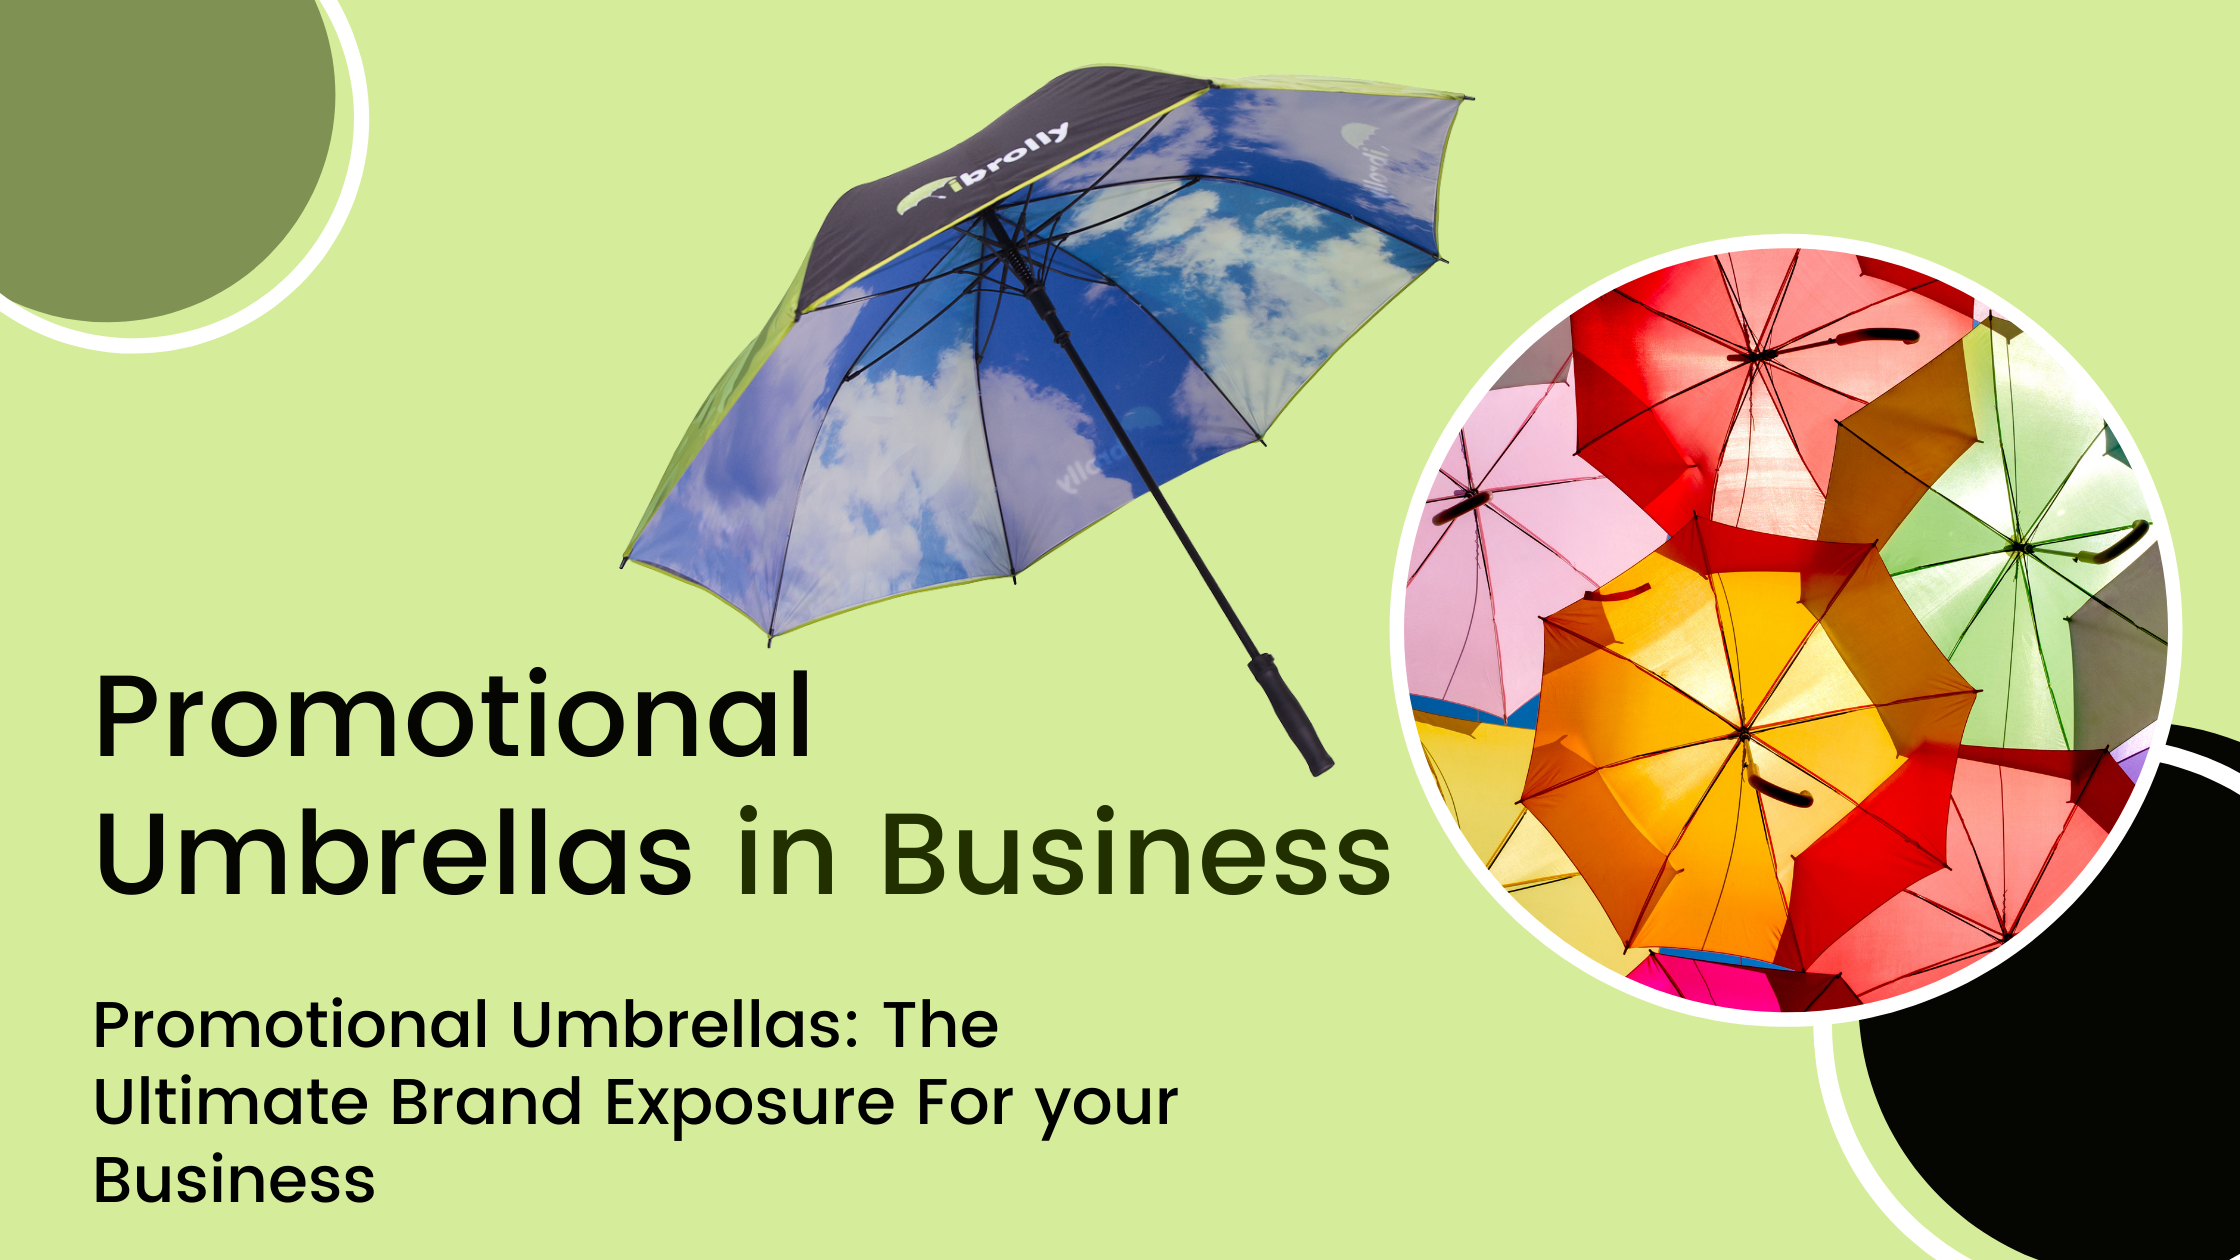 Promotional Umbrellas: The Ultimate Brand Exposure For your Business